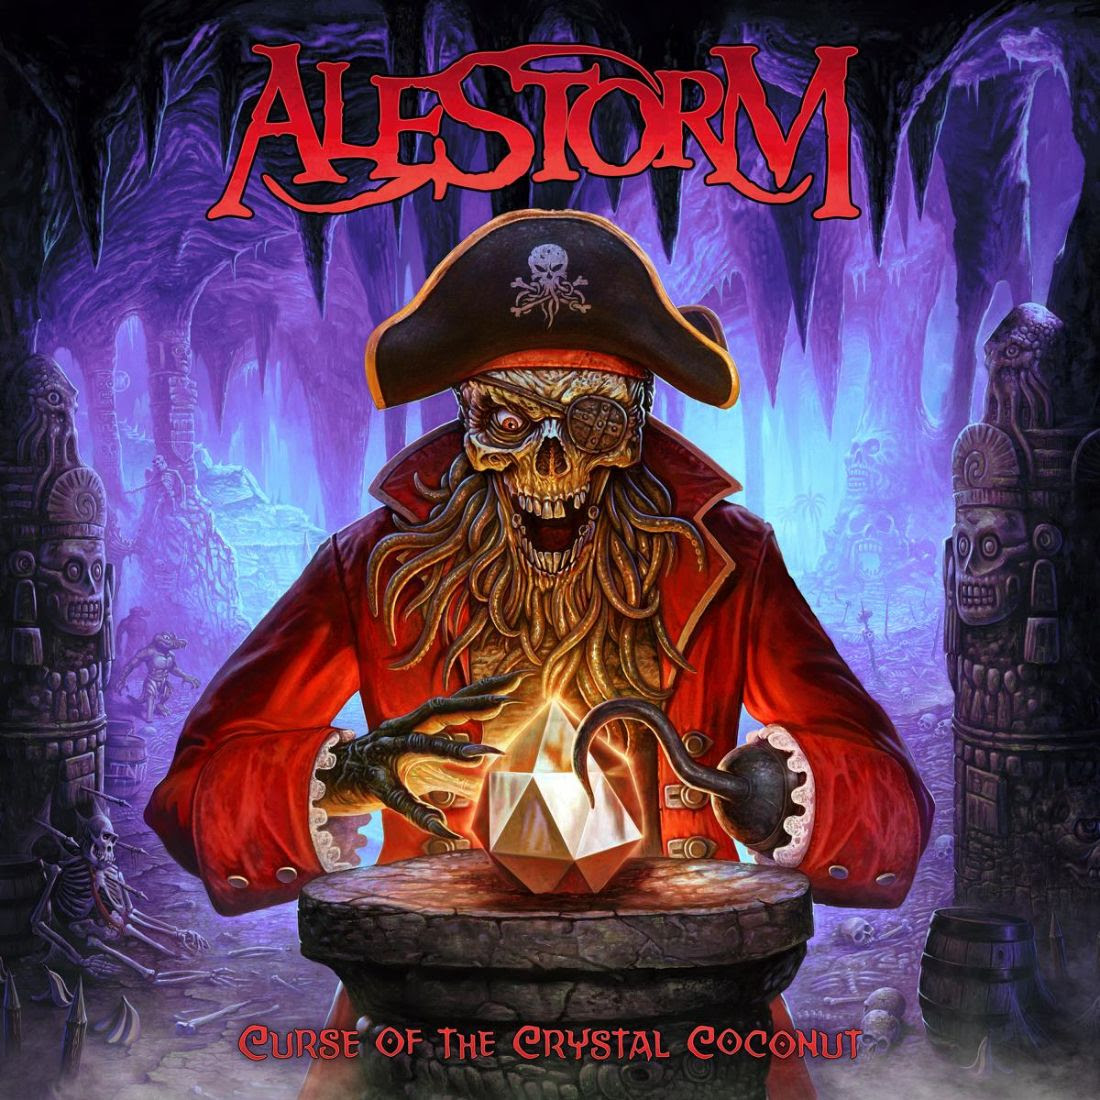 Alestorm - Curse Of The Crystal Coconut - Album Cover